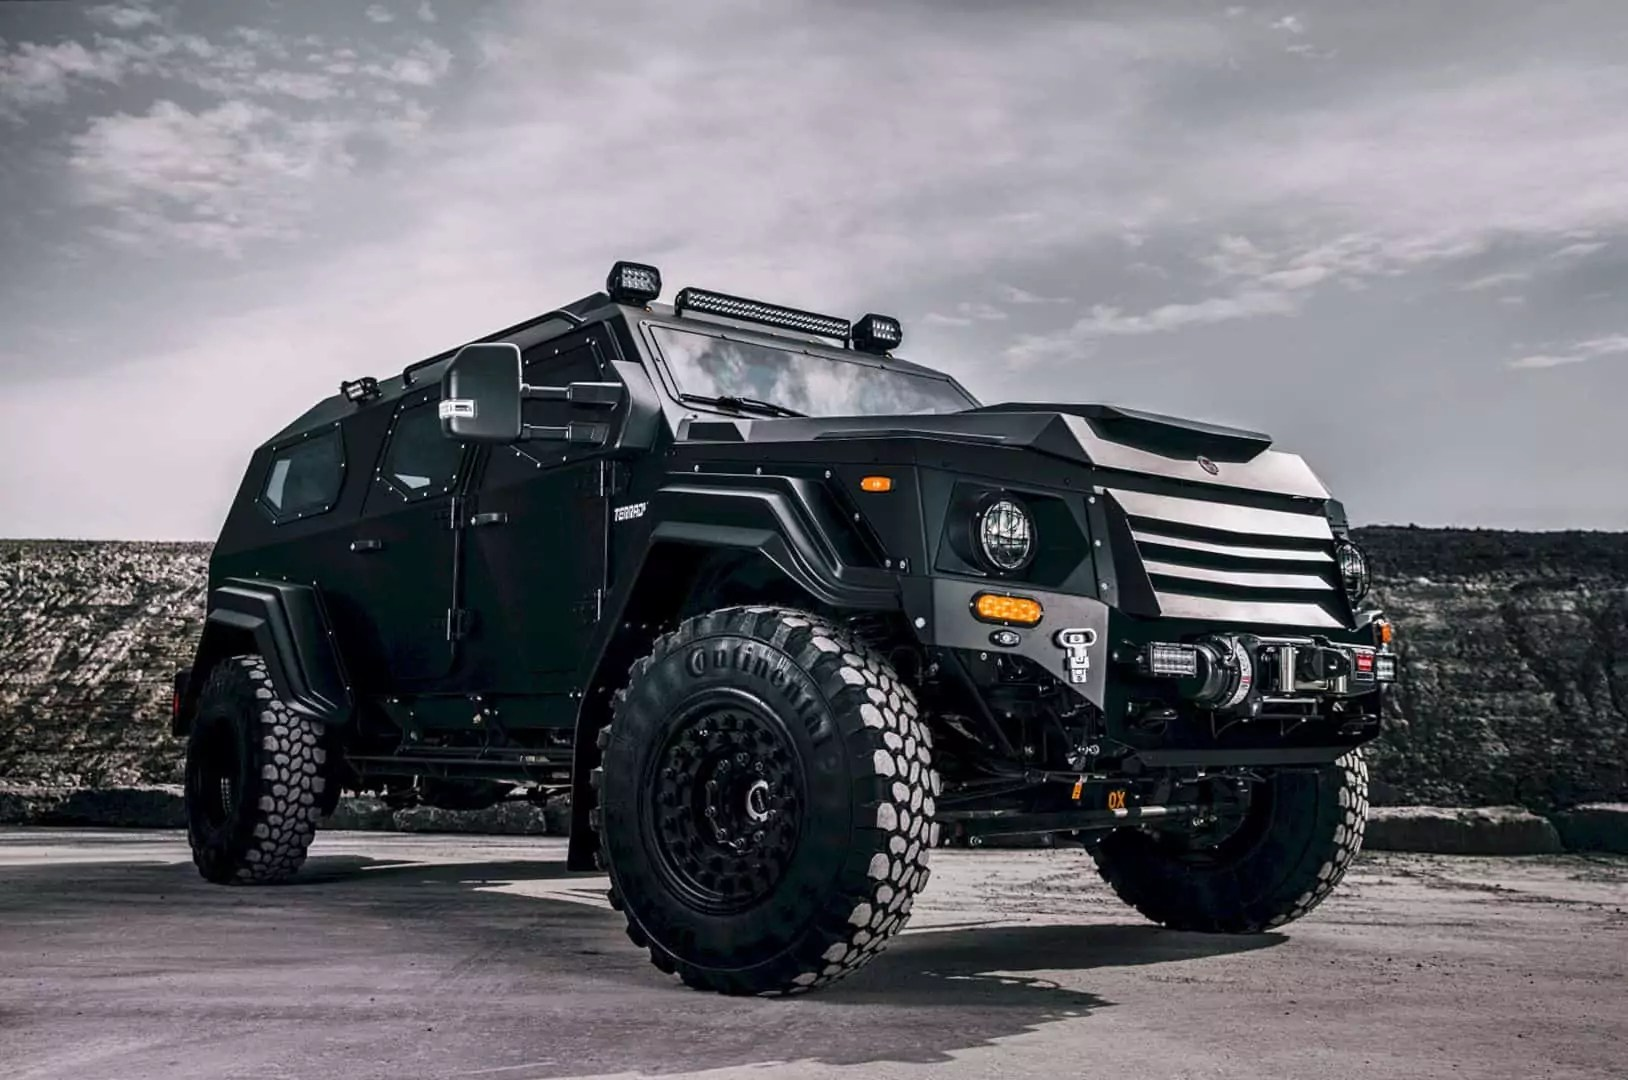 Gurkha LAPV From Terradyne Built Another Perspective of Light Armored Patrol Vehicle